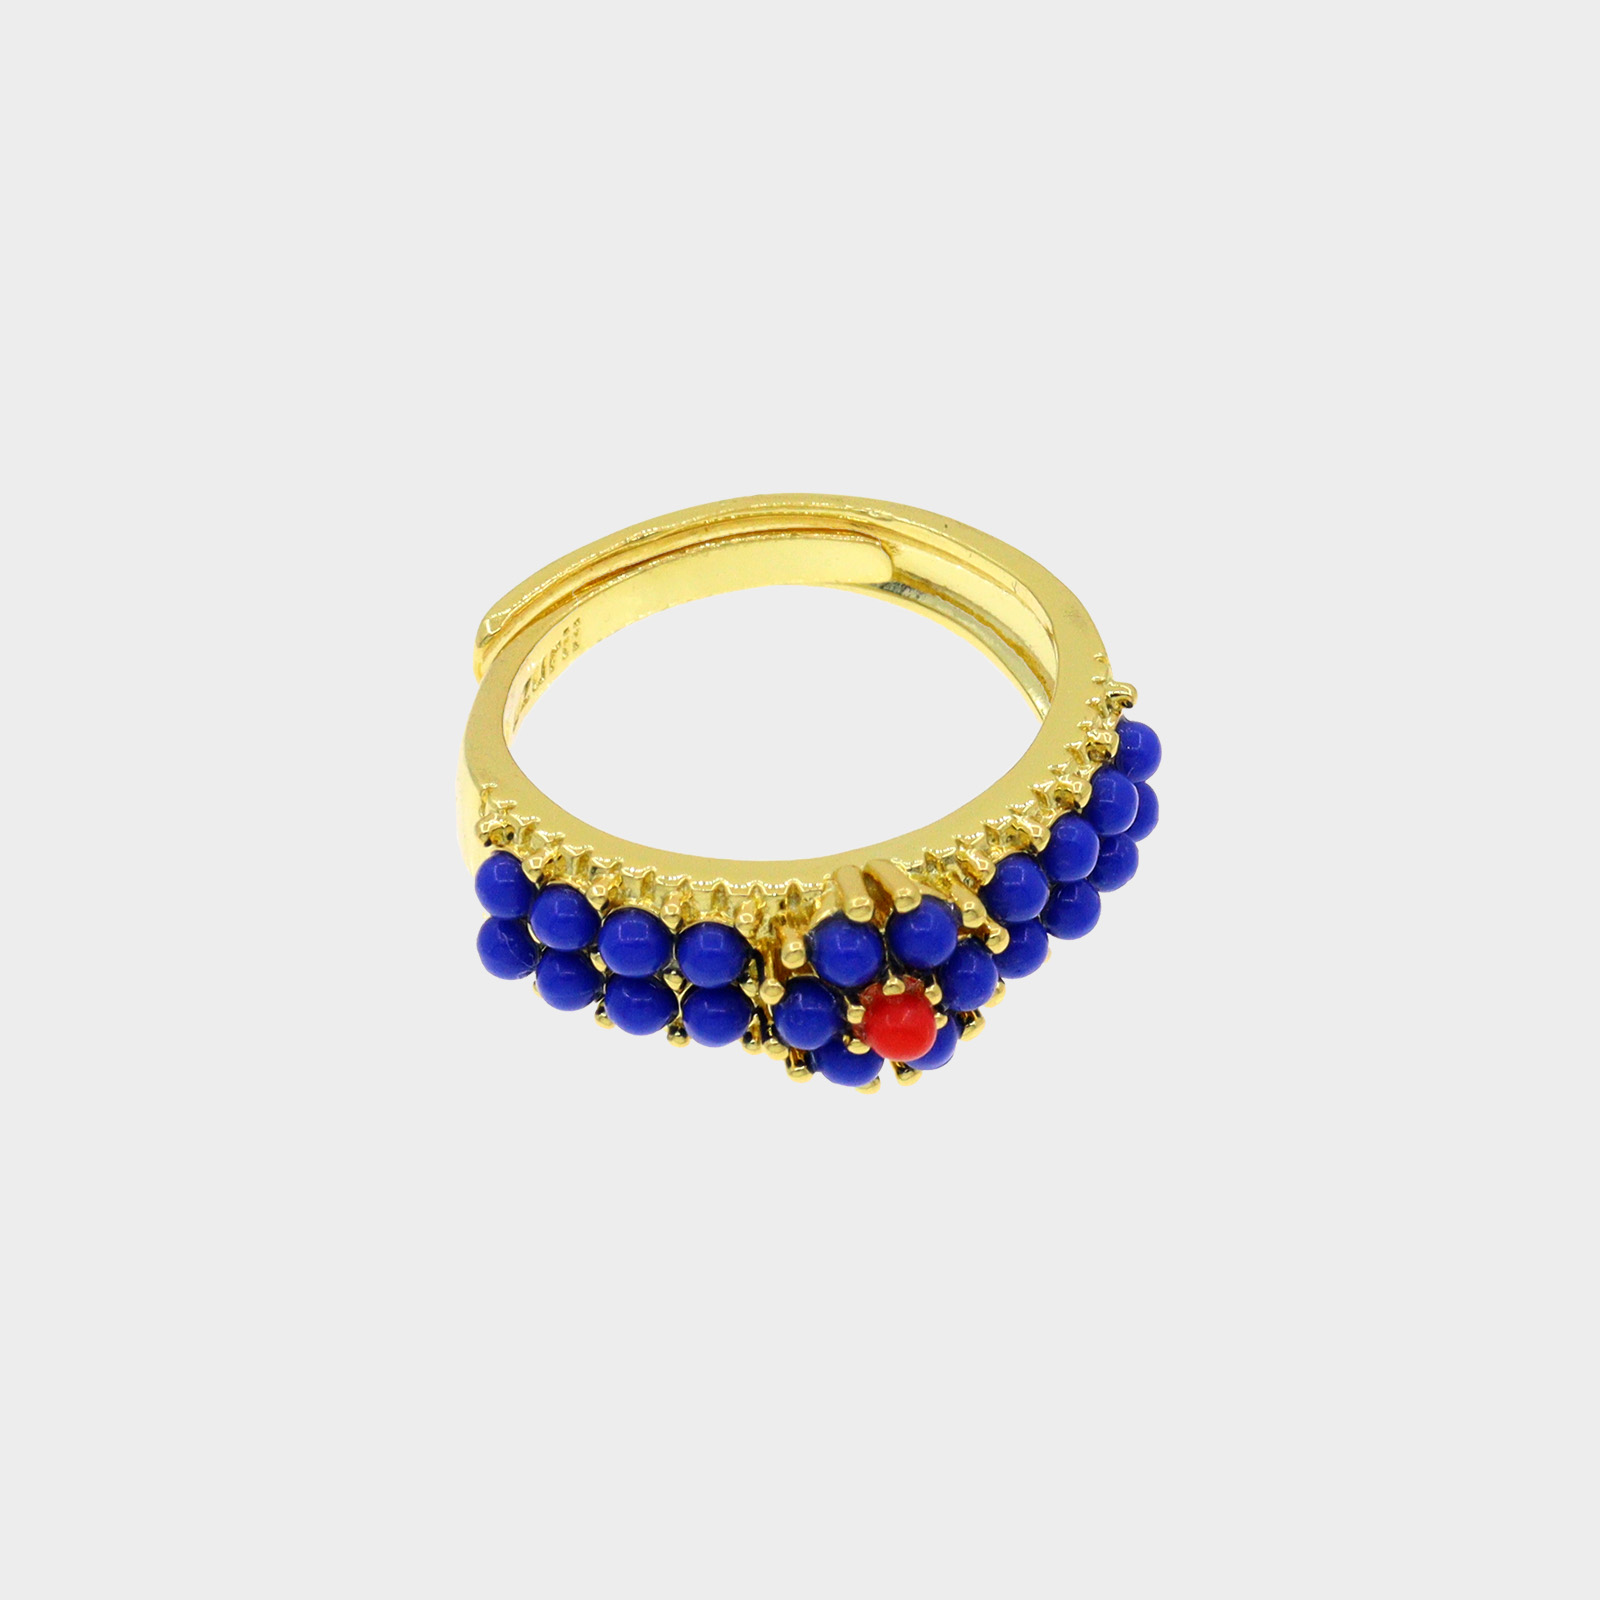 The Amazon Ring Blue